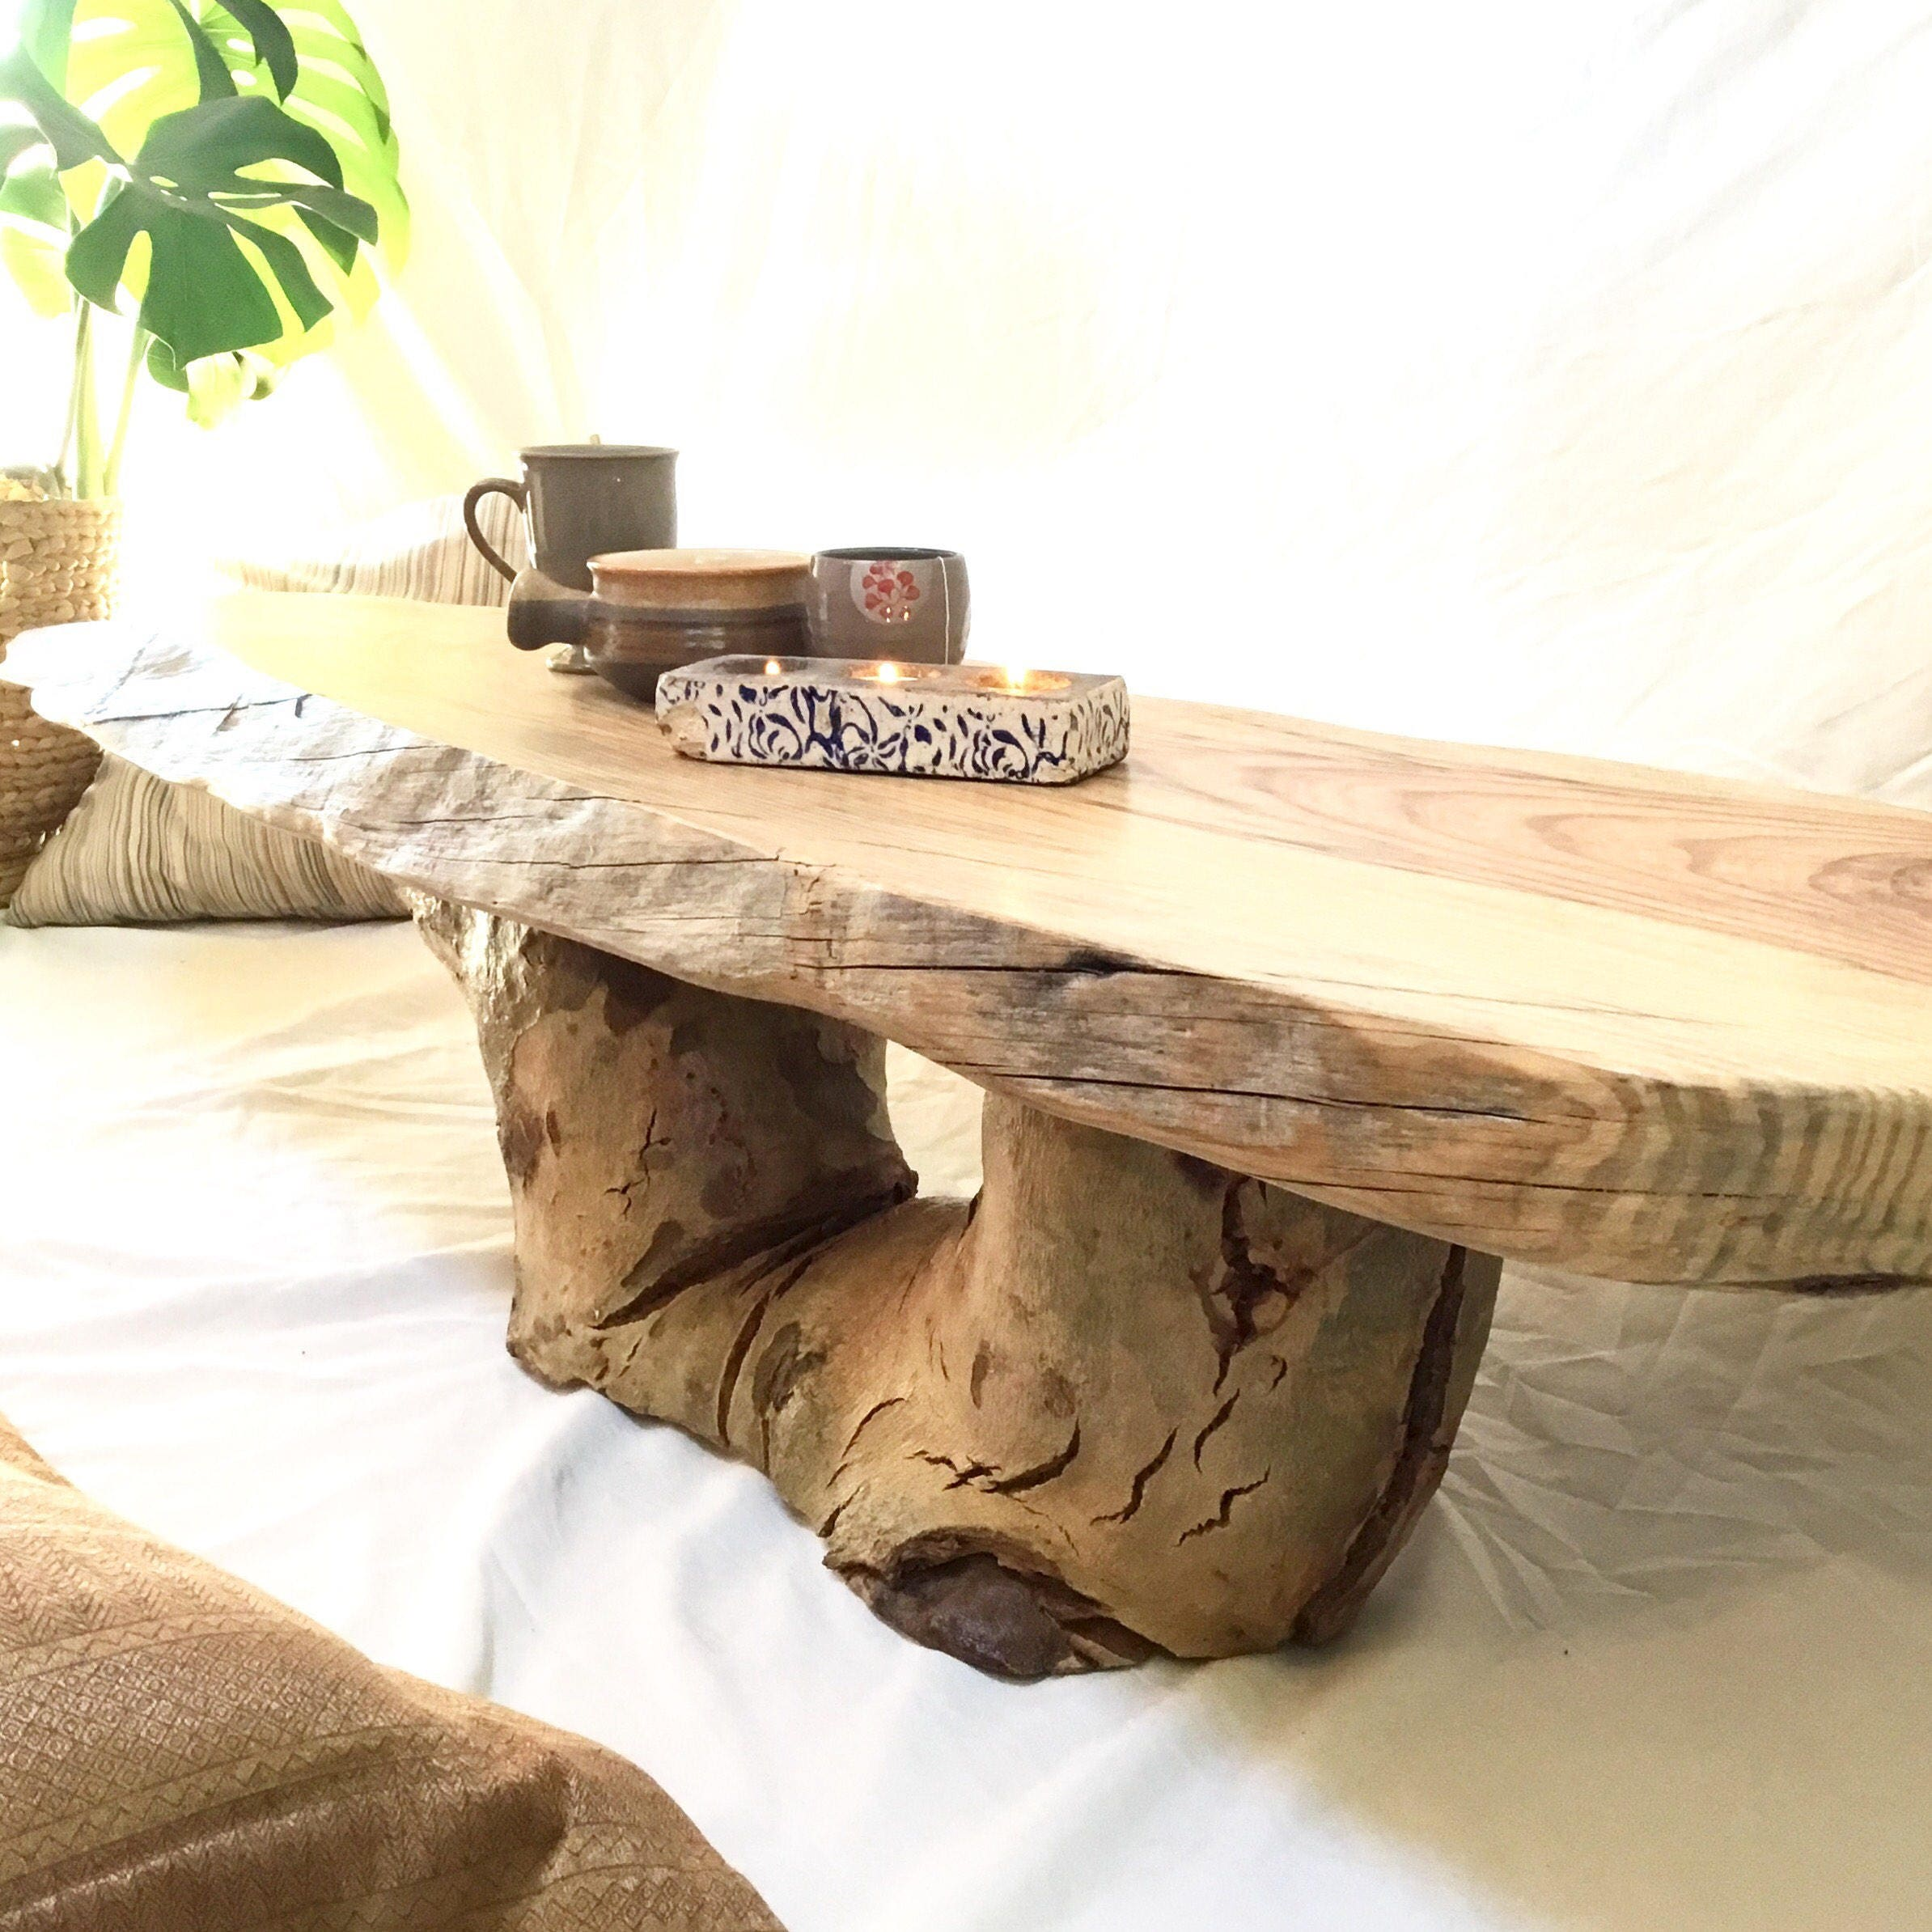 Coffee table Reclaimed Wood Rustic furniture Perth wooden live edge